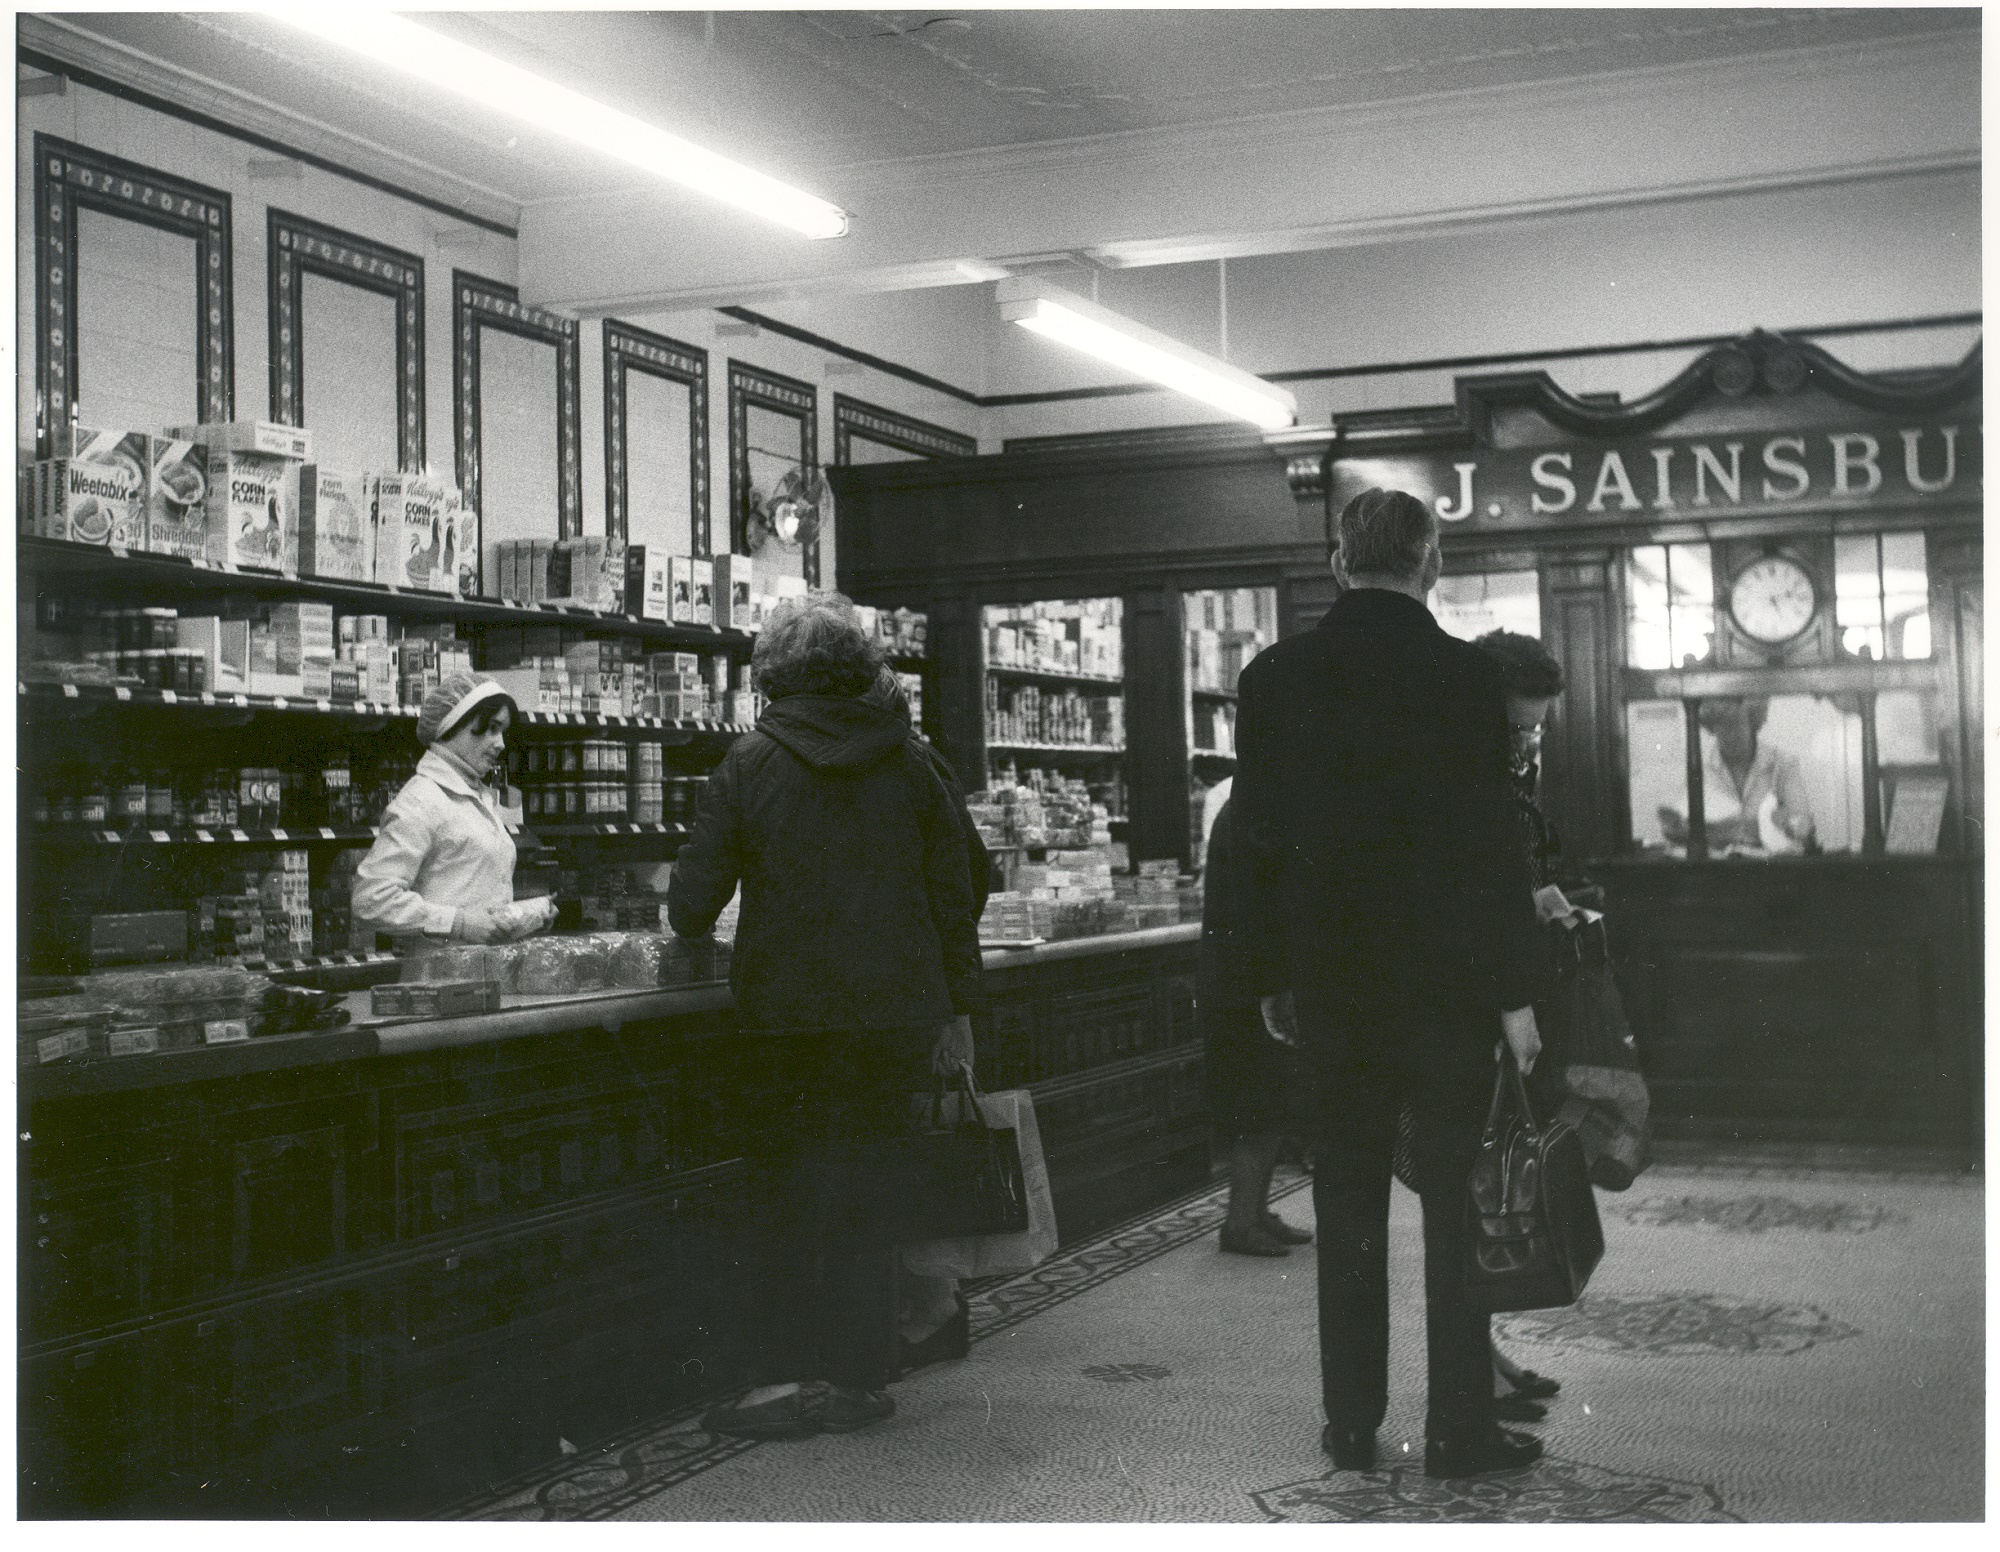 The inside of J. Sainsbury's shop, Weybridge c.1970s, showing an assistant behind the left counter and a group of 5 people standing beside the counter. The cash office can be seen on the right.